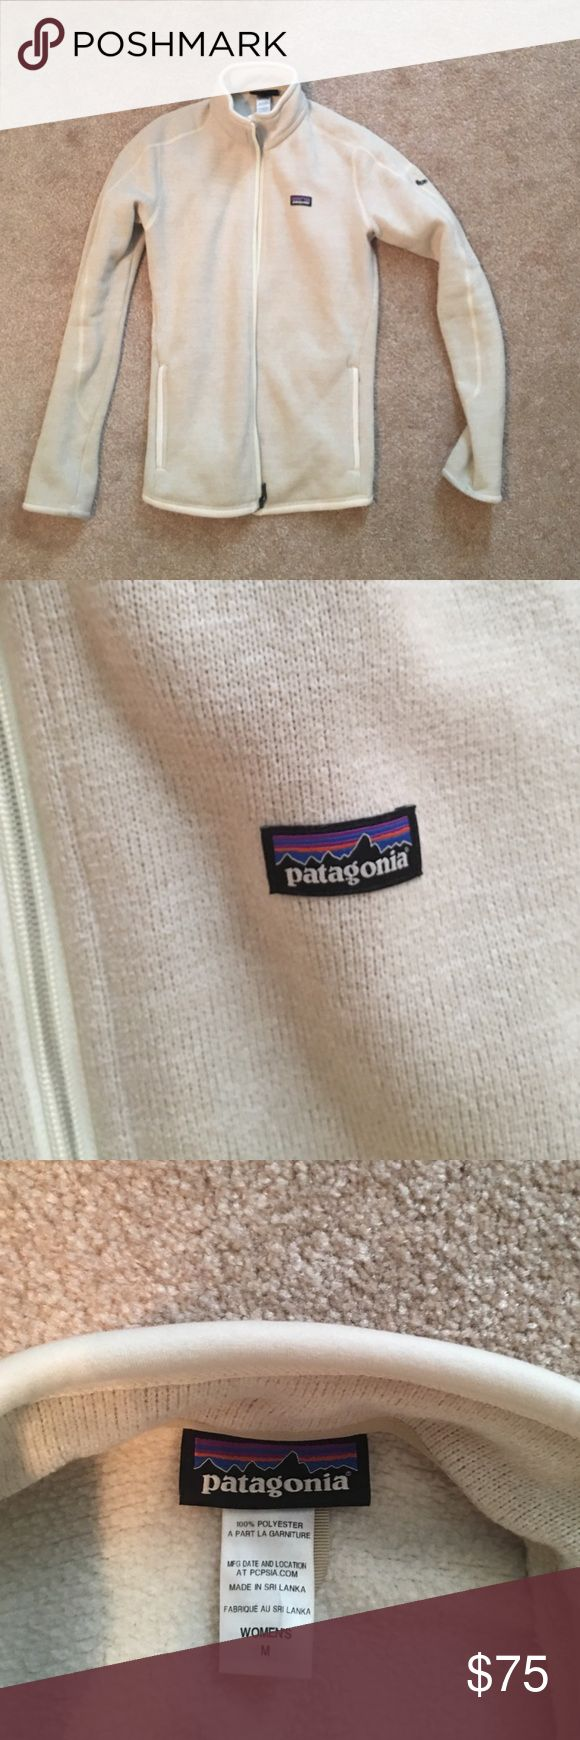 Patagonia better sweater full zip Linen Patagonia better sweater full zip in good used condition - can only tell used by slight discoloration on end of sleeves Patagonia Jackets & Coats